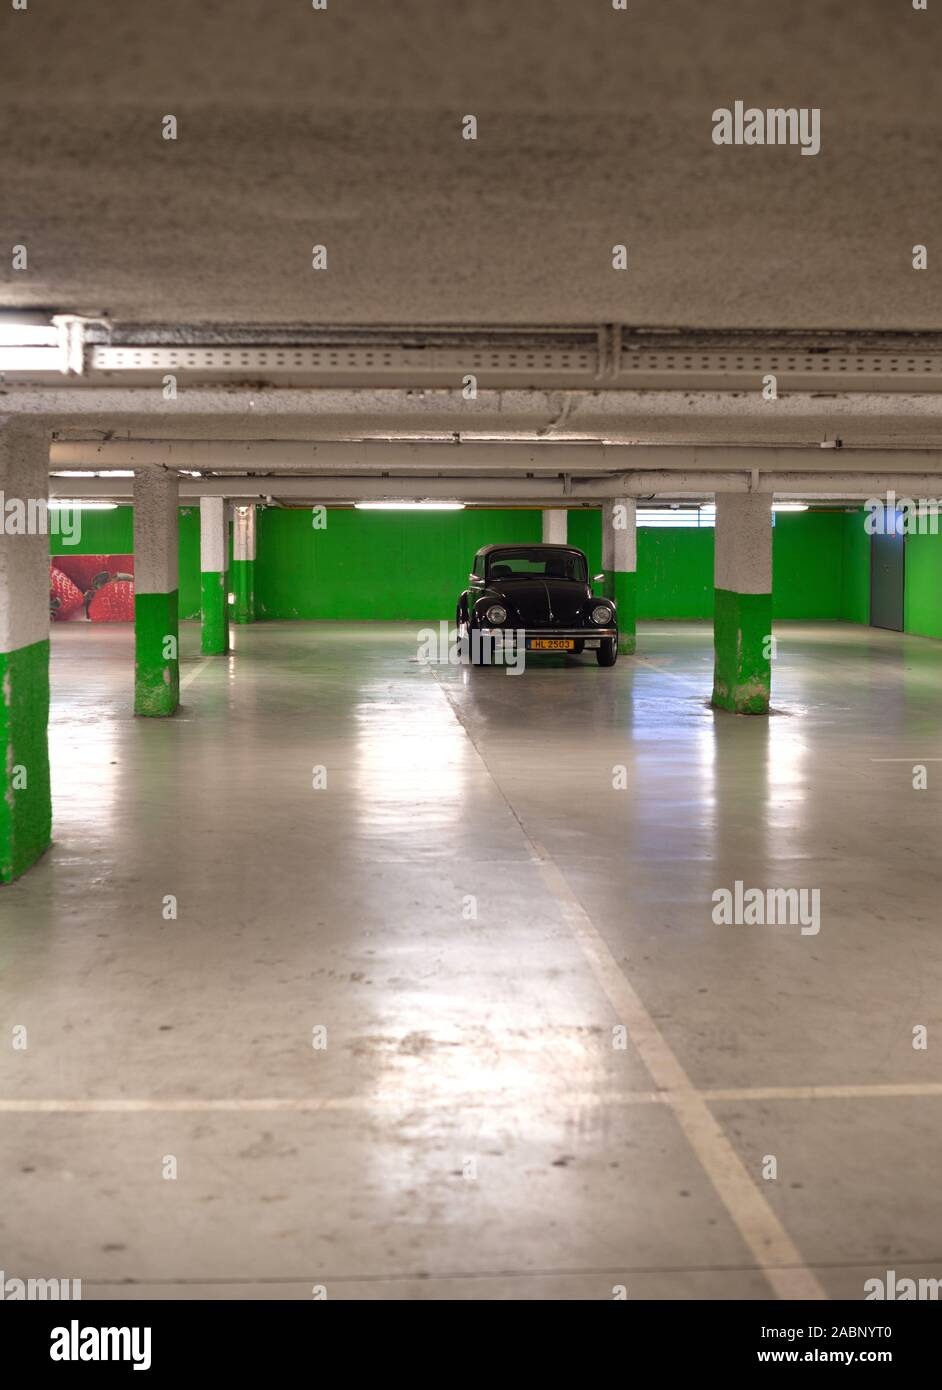 Strasbourg, France - Dec 21, 2016: Vertical image of black cabriolet convertible Volkswagen Beetle mini car parked in empty underground green wall parking Stock Photo